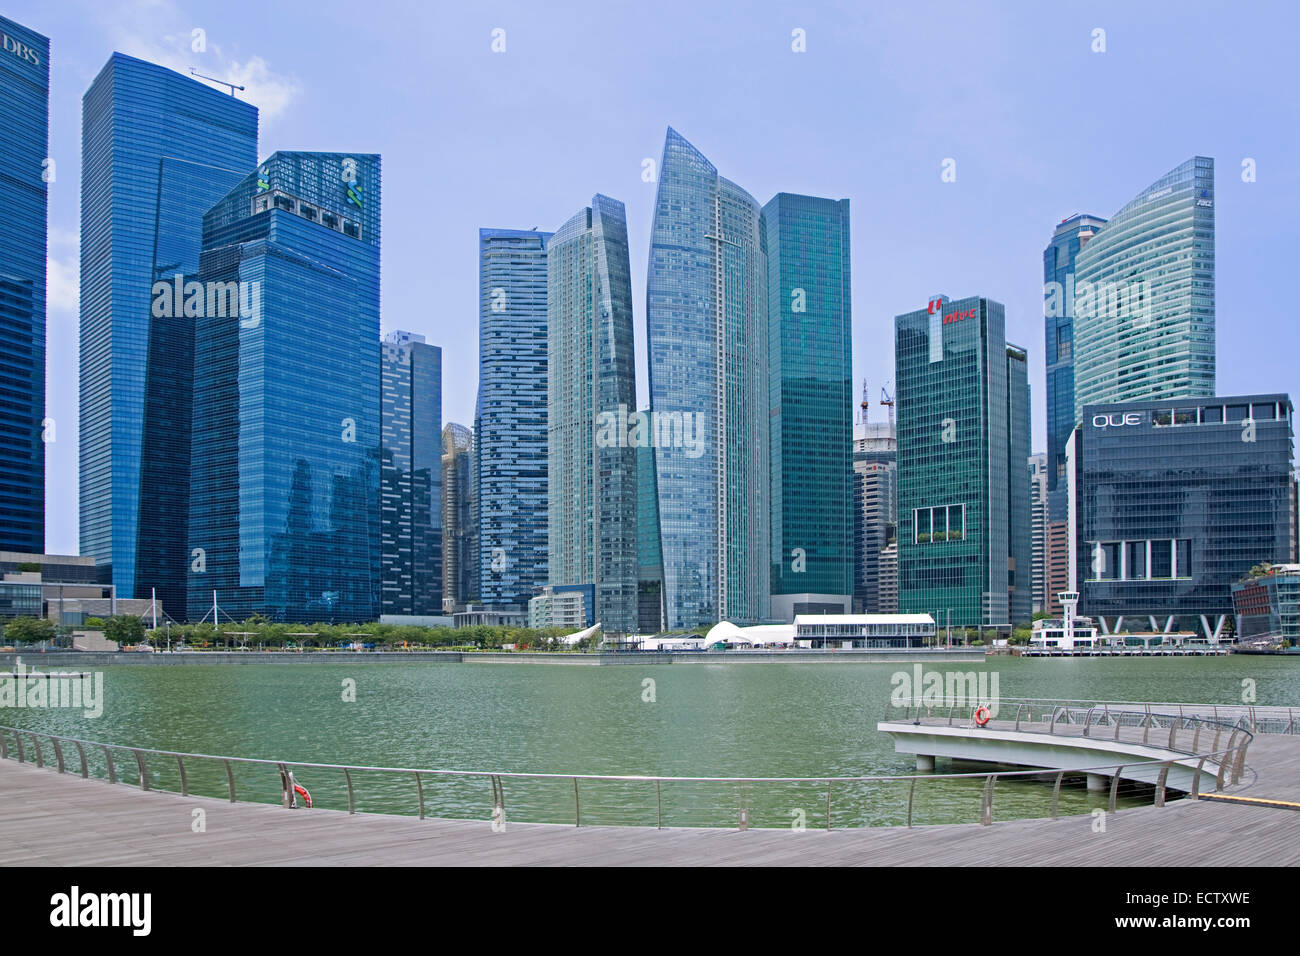 High-rise office blocks and skyscrapers in the Central Area / Central Business District of Singapore seen from the - Stock Image